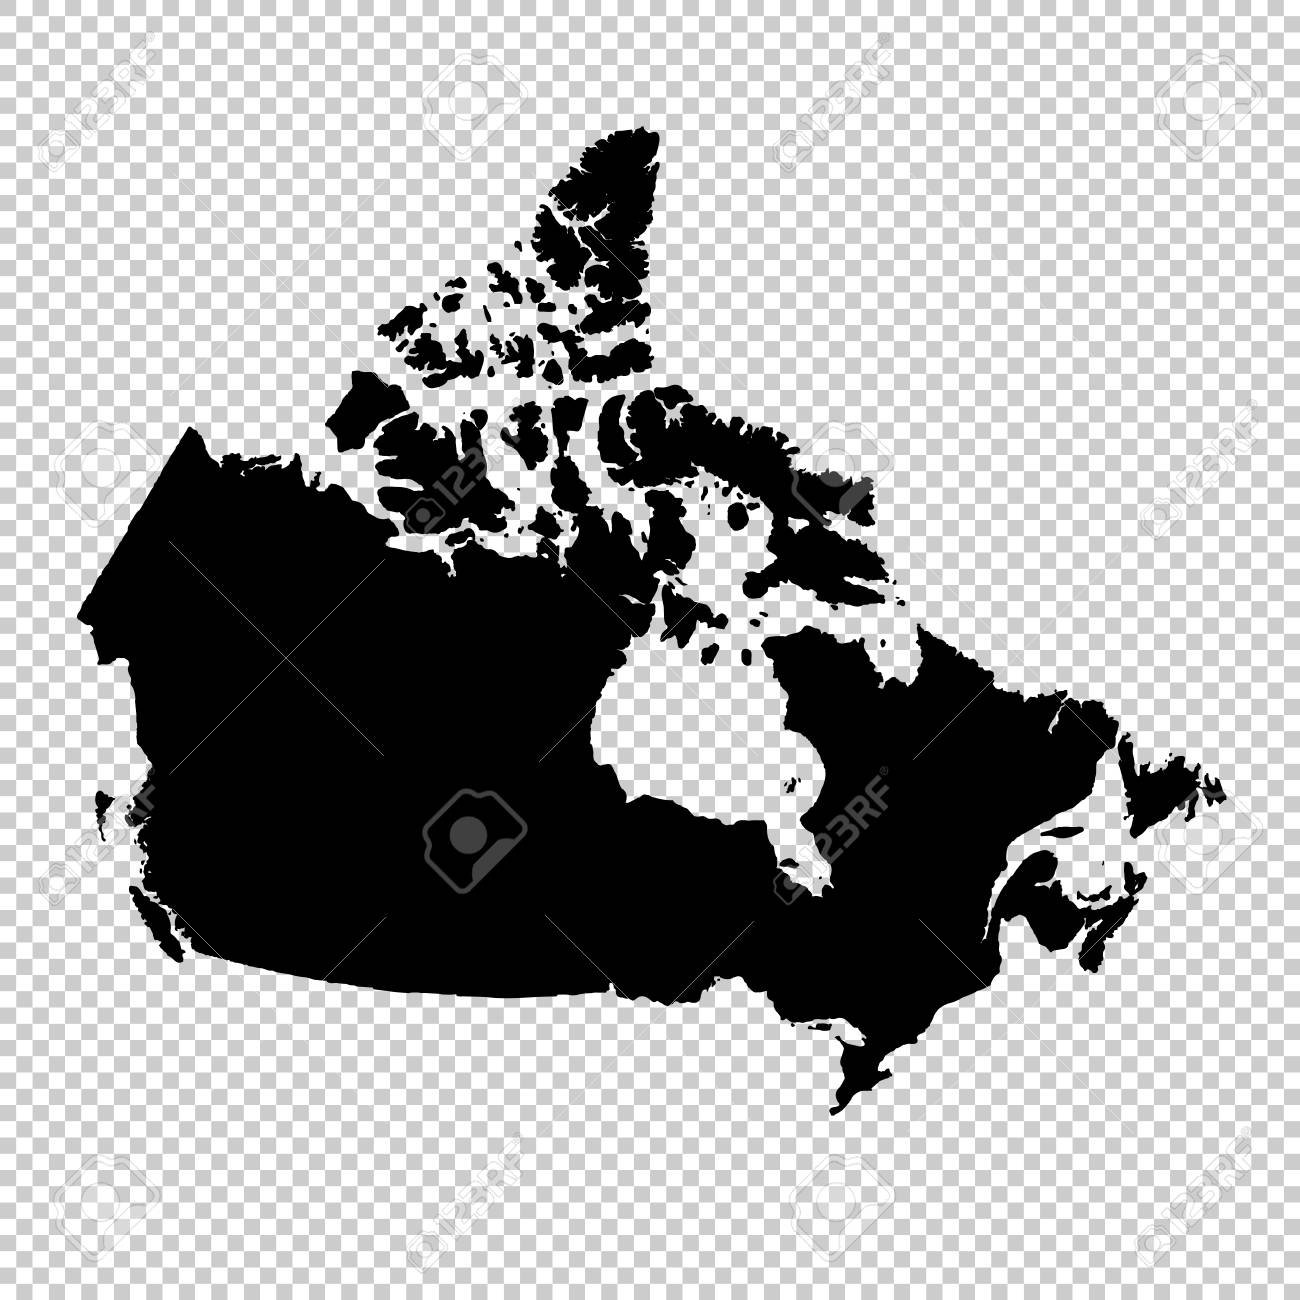 Map Of Canada Eps Vector Map Canada. Isolated Vector Illustration. Black On White